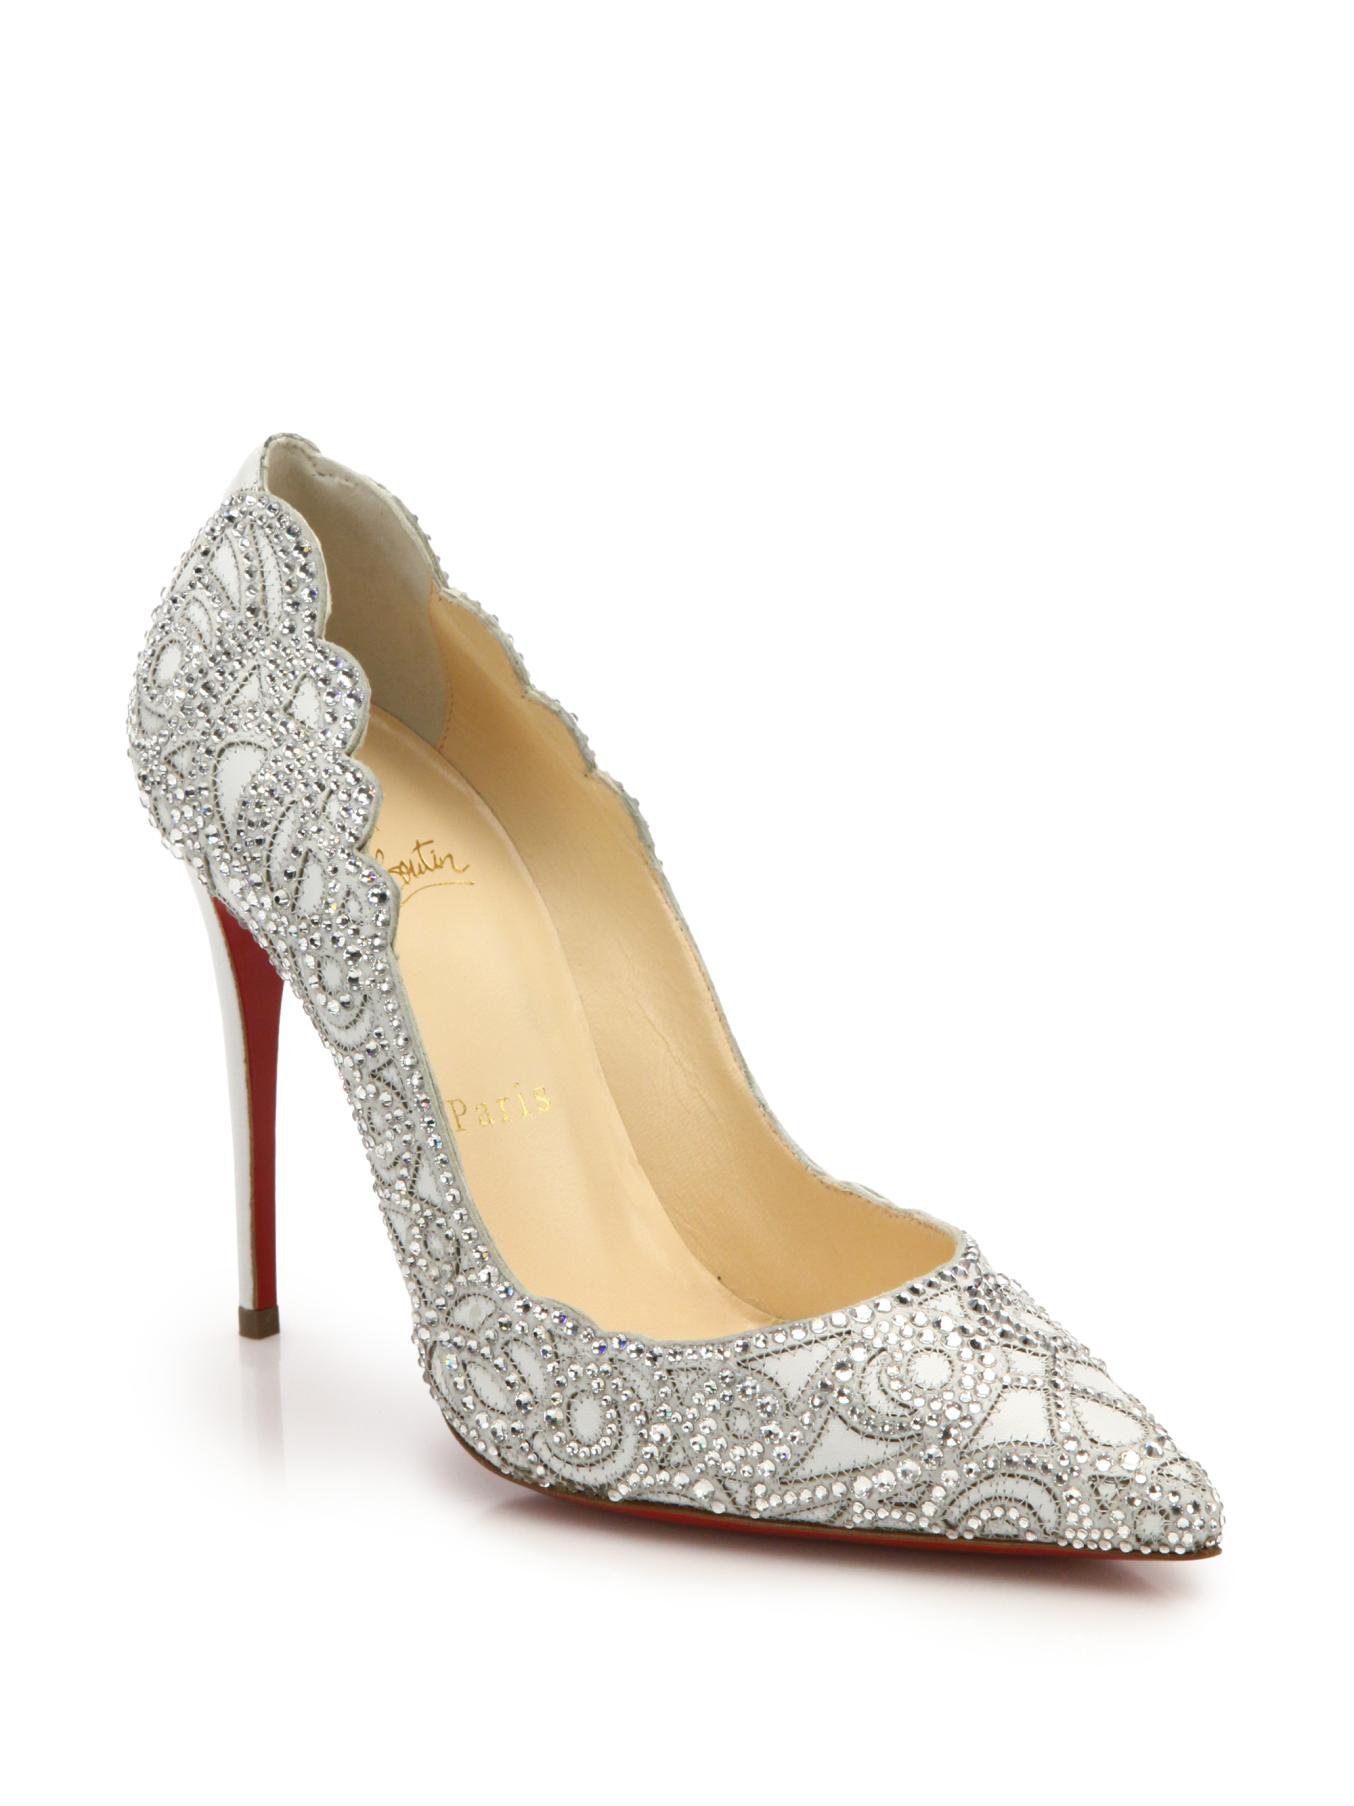 Lyst Christian Louboutin Top Vague Crystal Leather Pumps